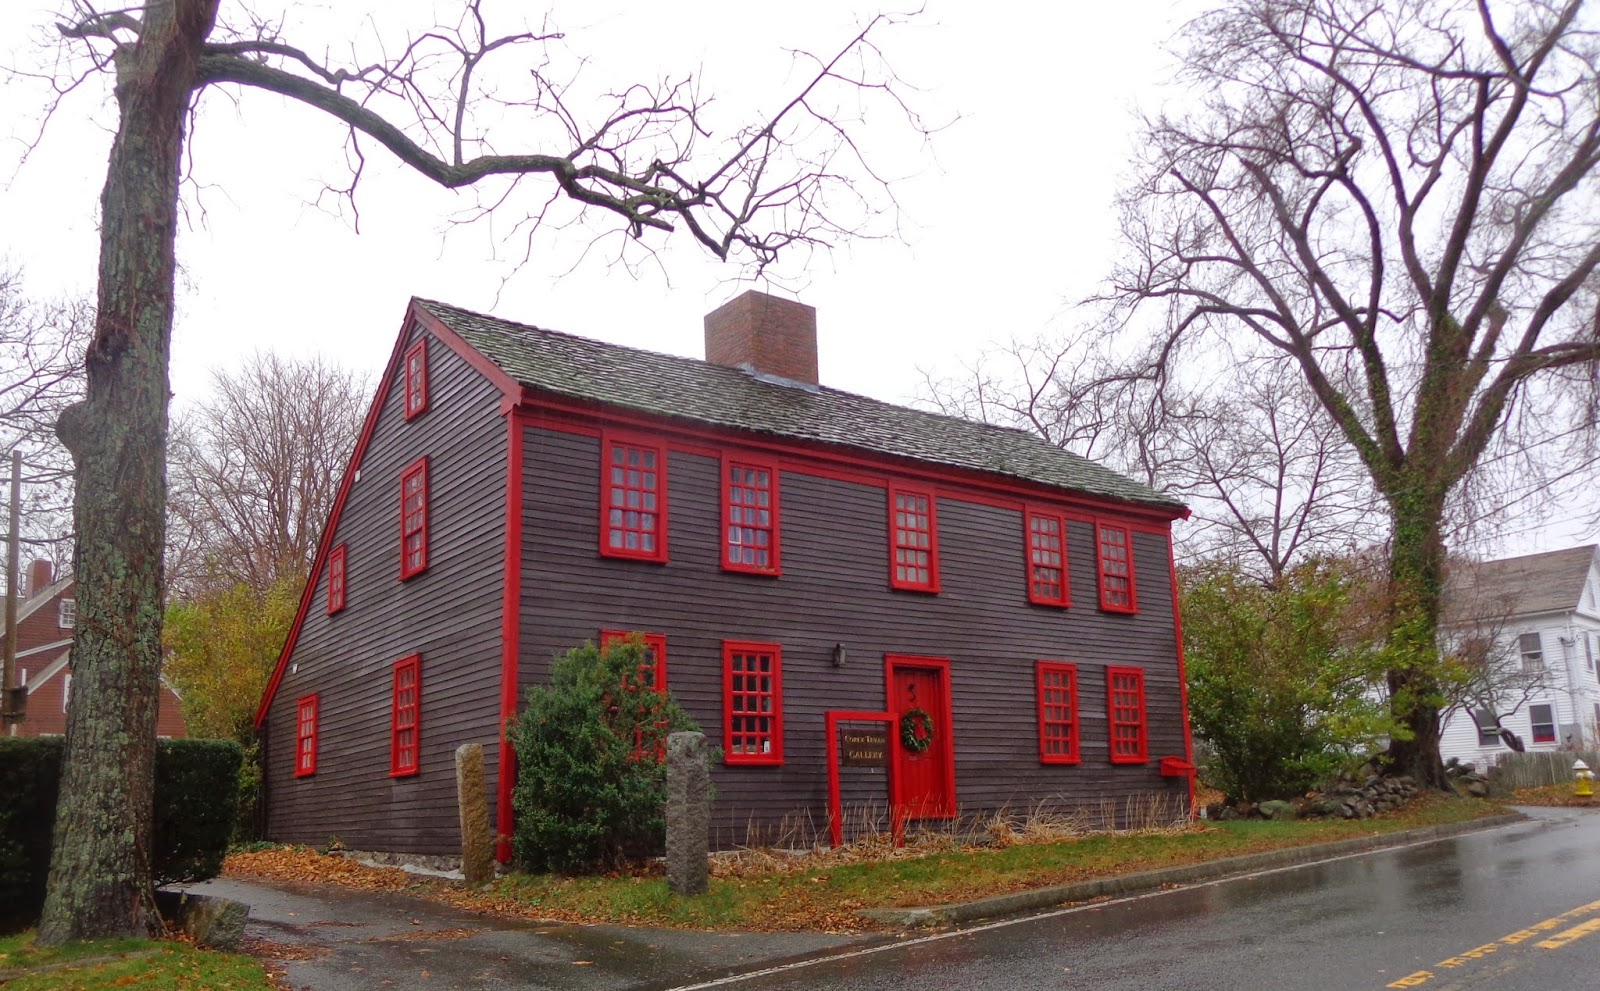 antique houses of gloucester and beyond november 2014 the 1757 house built by ephraim shelden the saltbox was added by the rowe brothers circa 1787